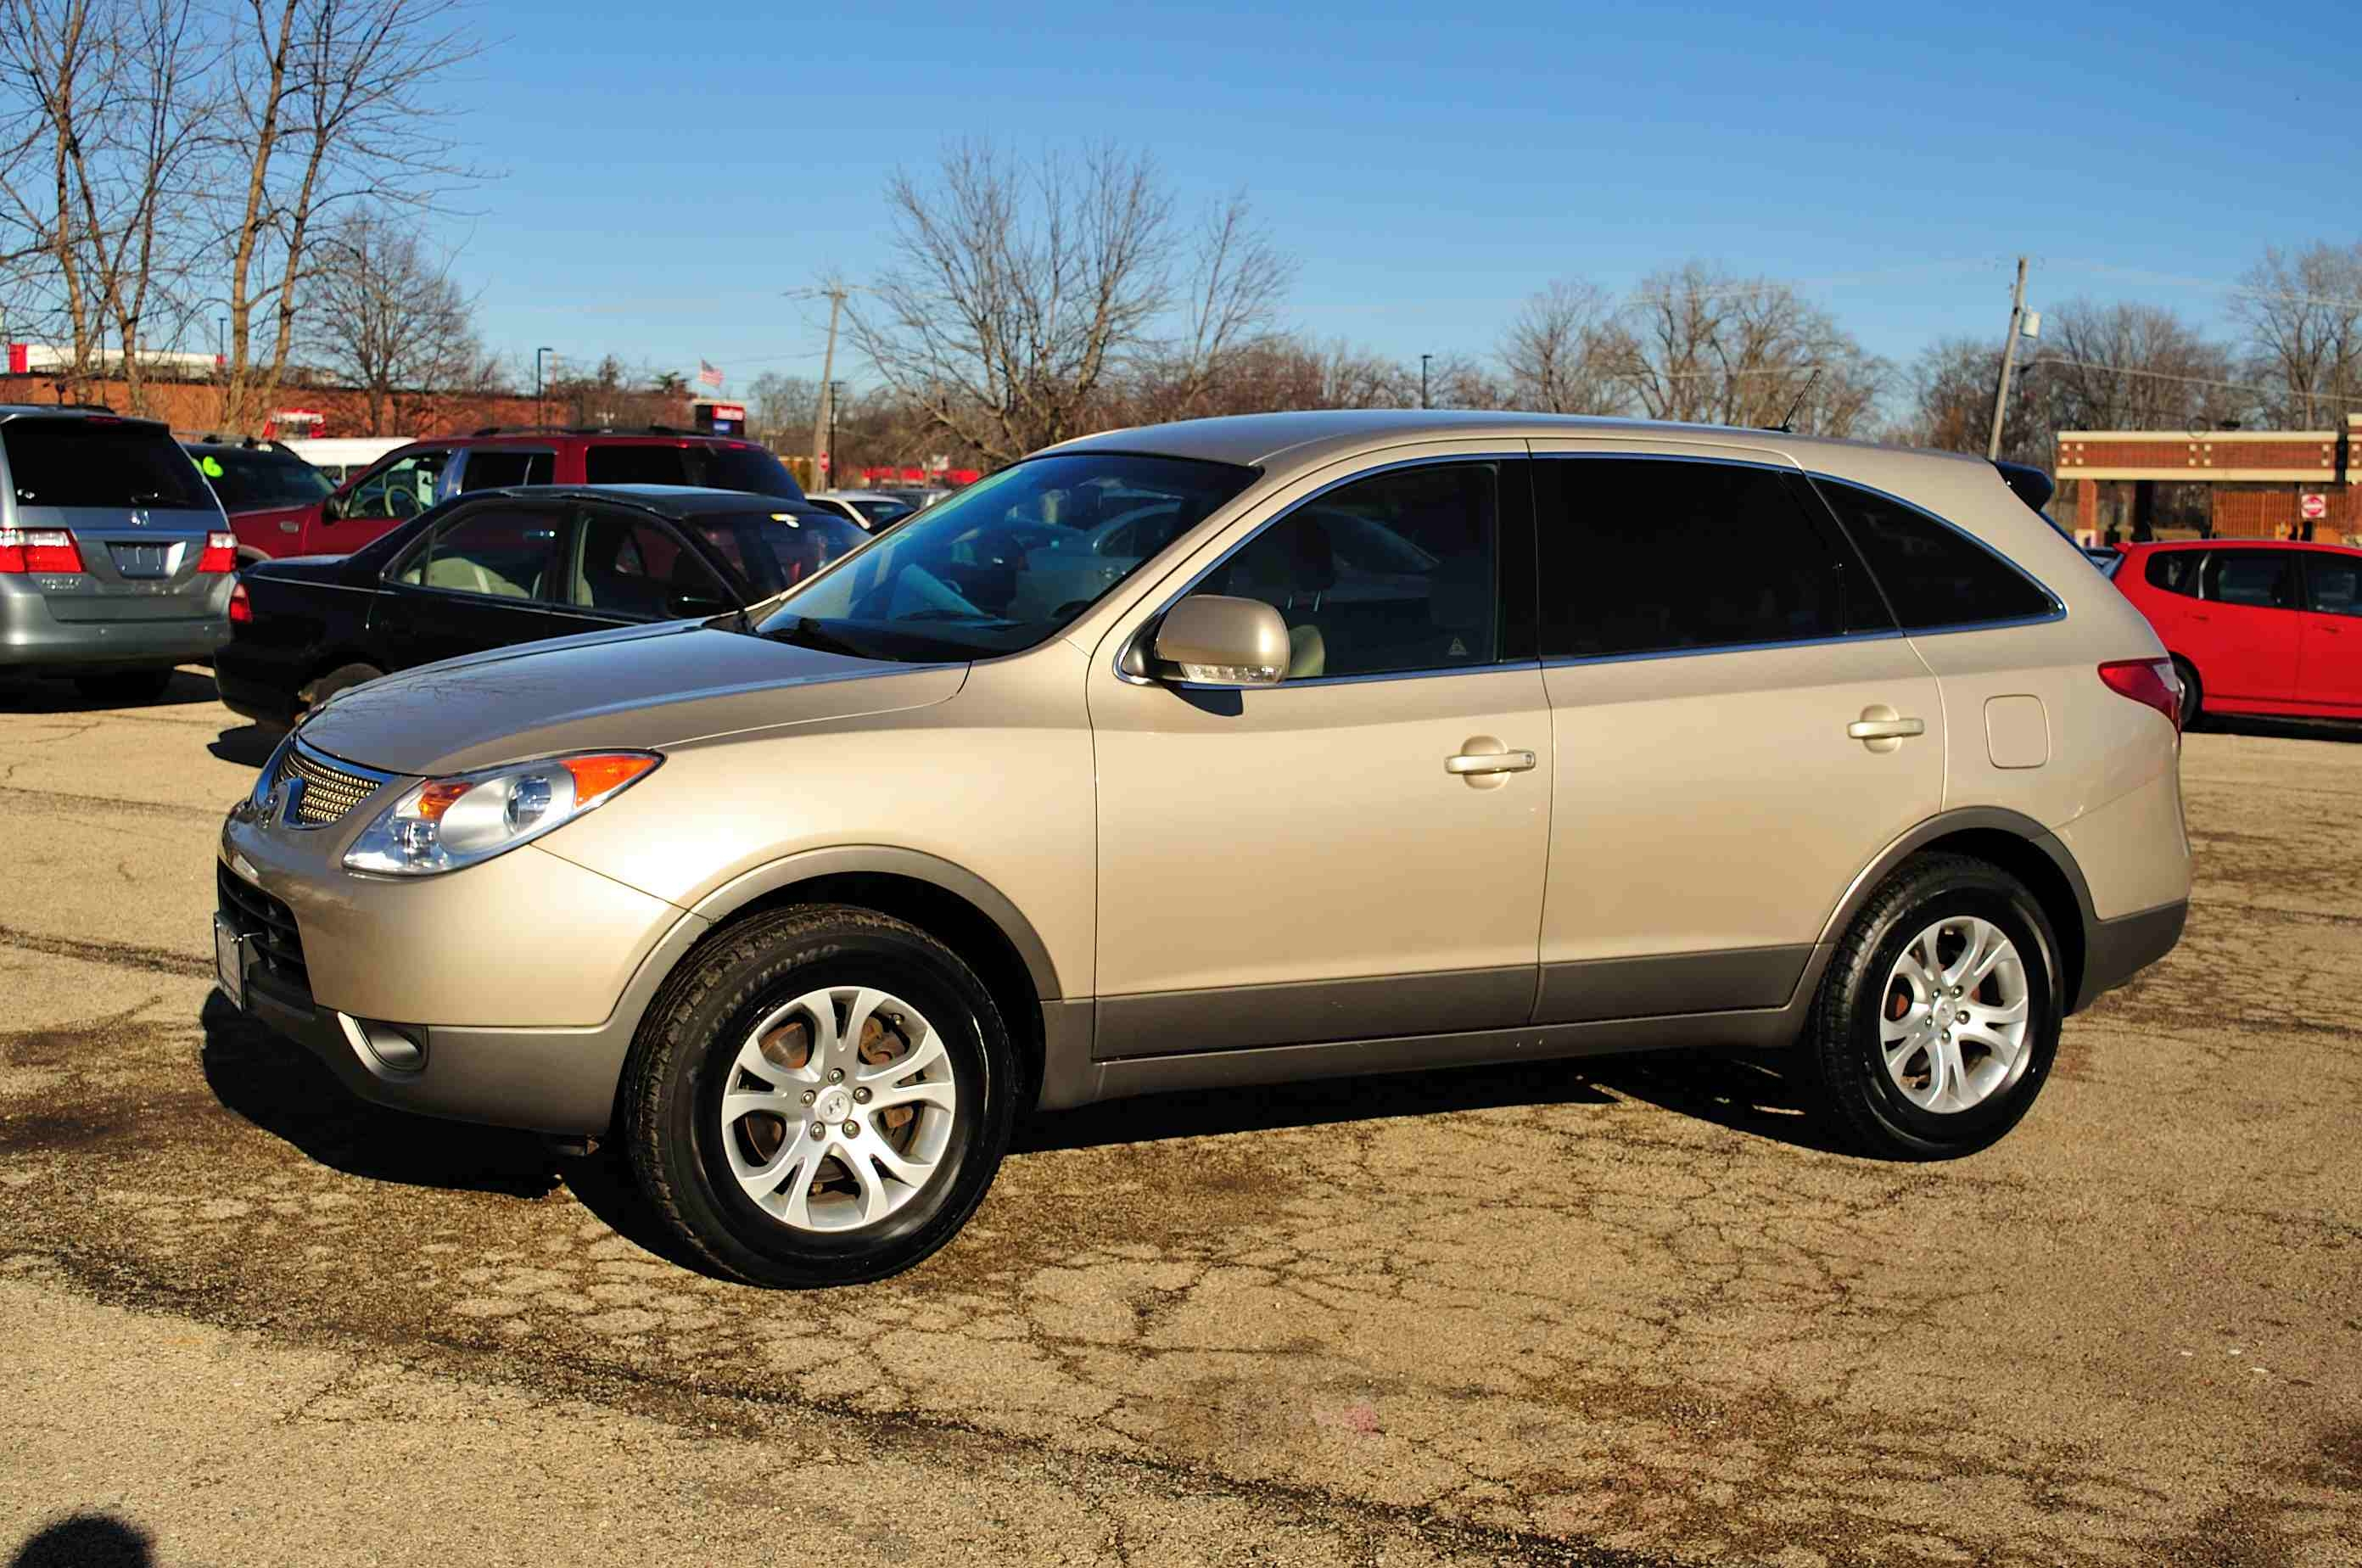 2008 Hyundai Veracruz Sand Minivan Used Car Sale Antioch Zion Waukegan Lake County Illinois